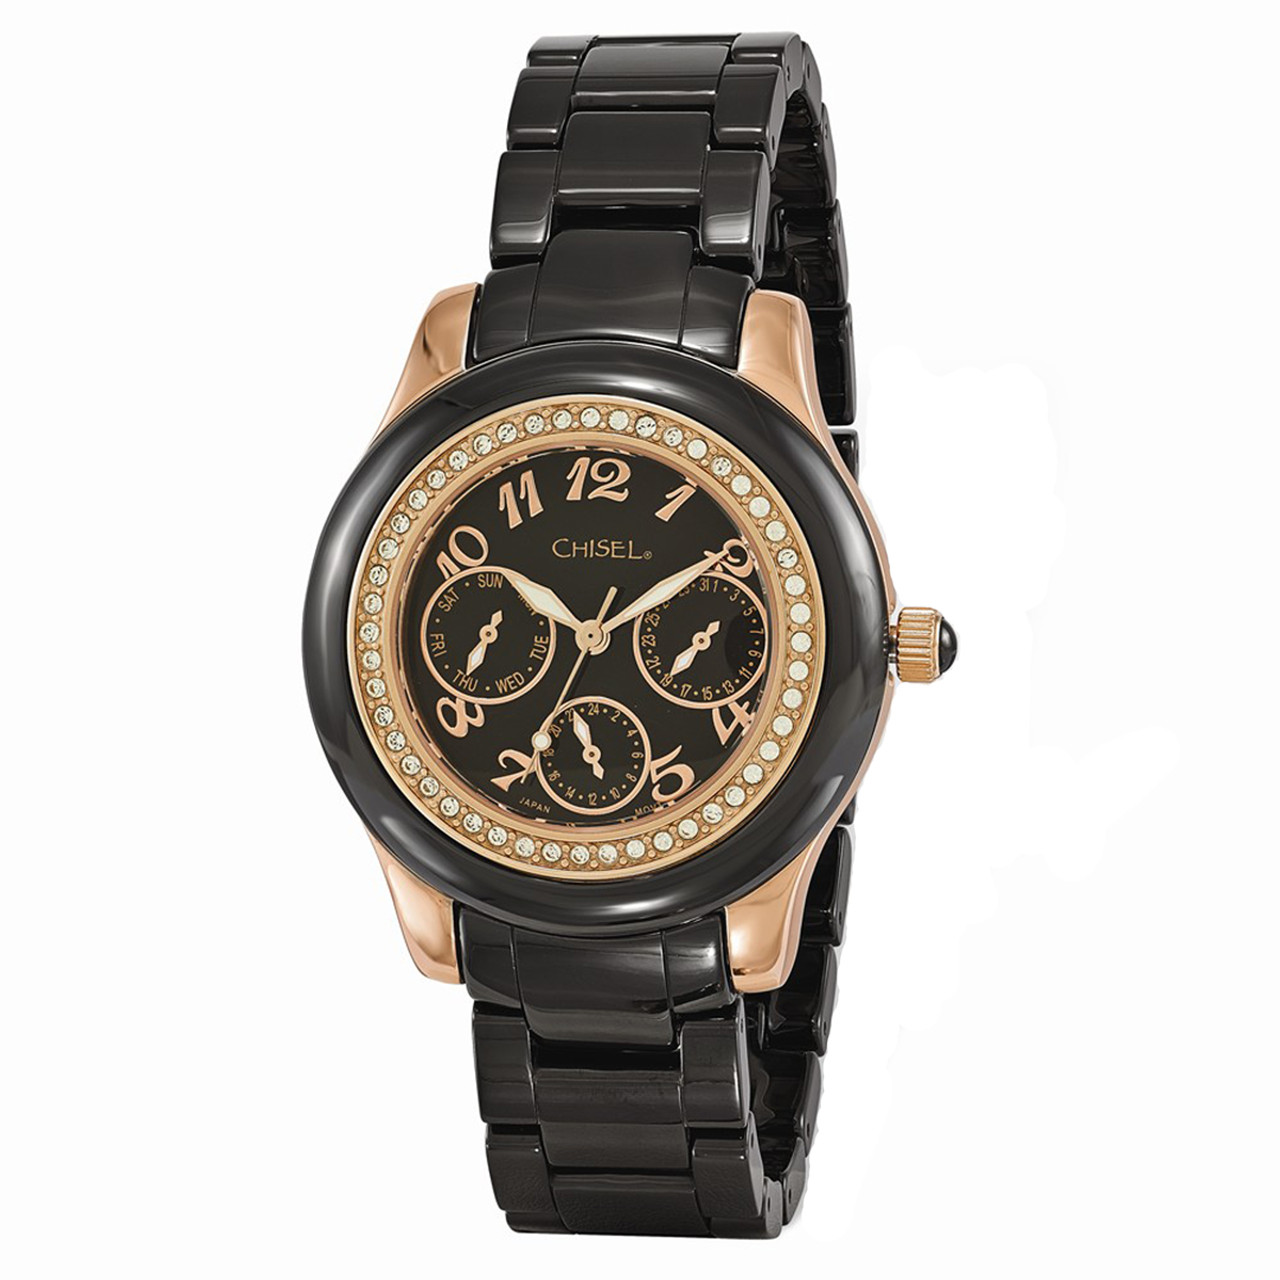 da001b16ecb2a Chisel Swarovski Rosetone Black Dial with Date Ceramic Womens Watch TPW115